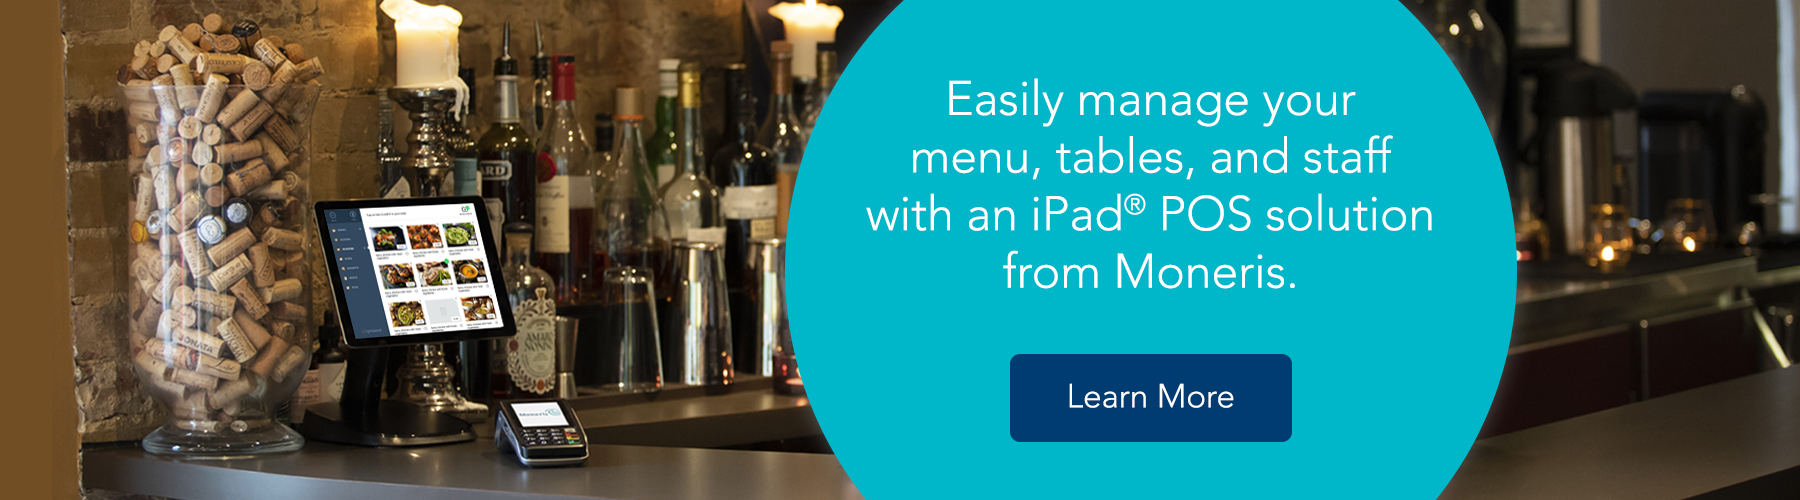 Easily manage your menu, tables, and staff with an iPad POS solution from Moneris. Learn more.